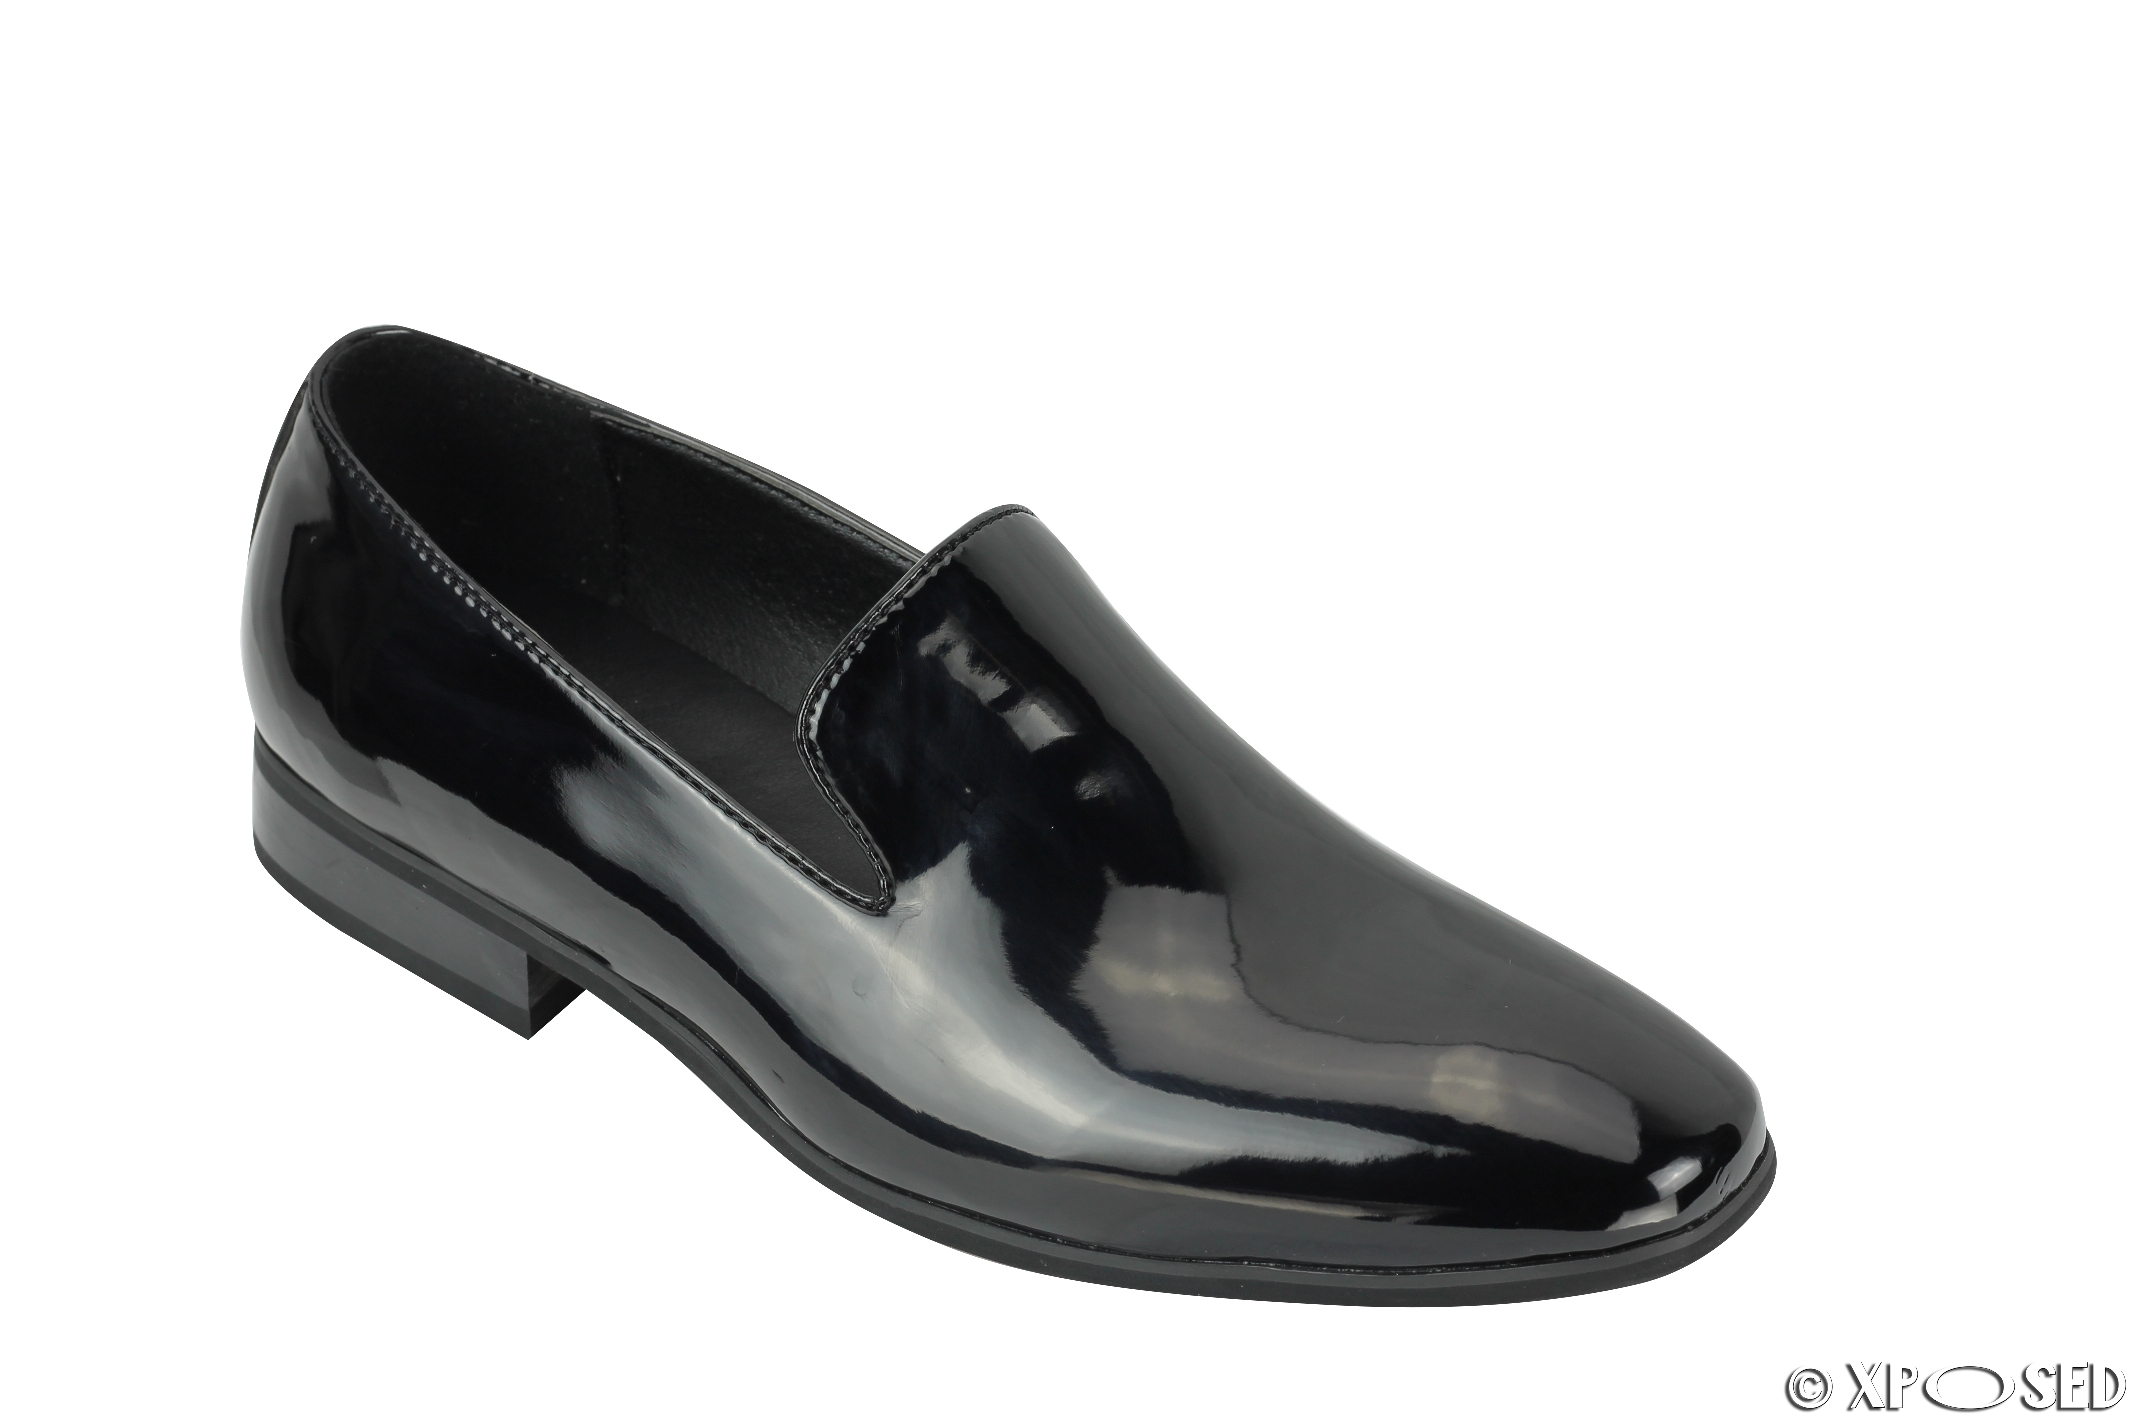 new mens loafers patent leather smart casual slip on driving shoes uk size 6 12 ebay